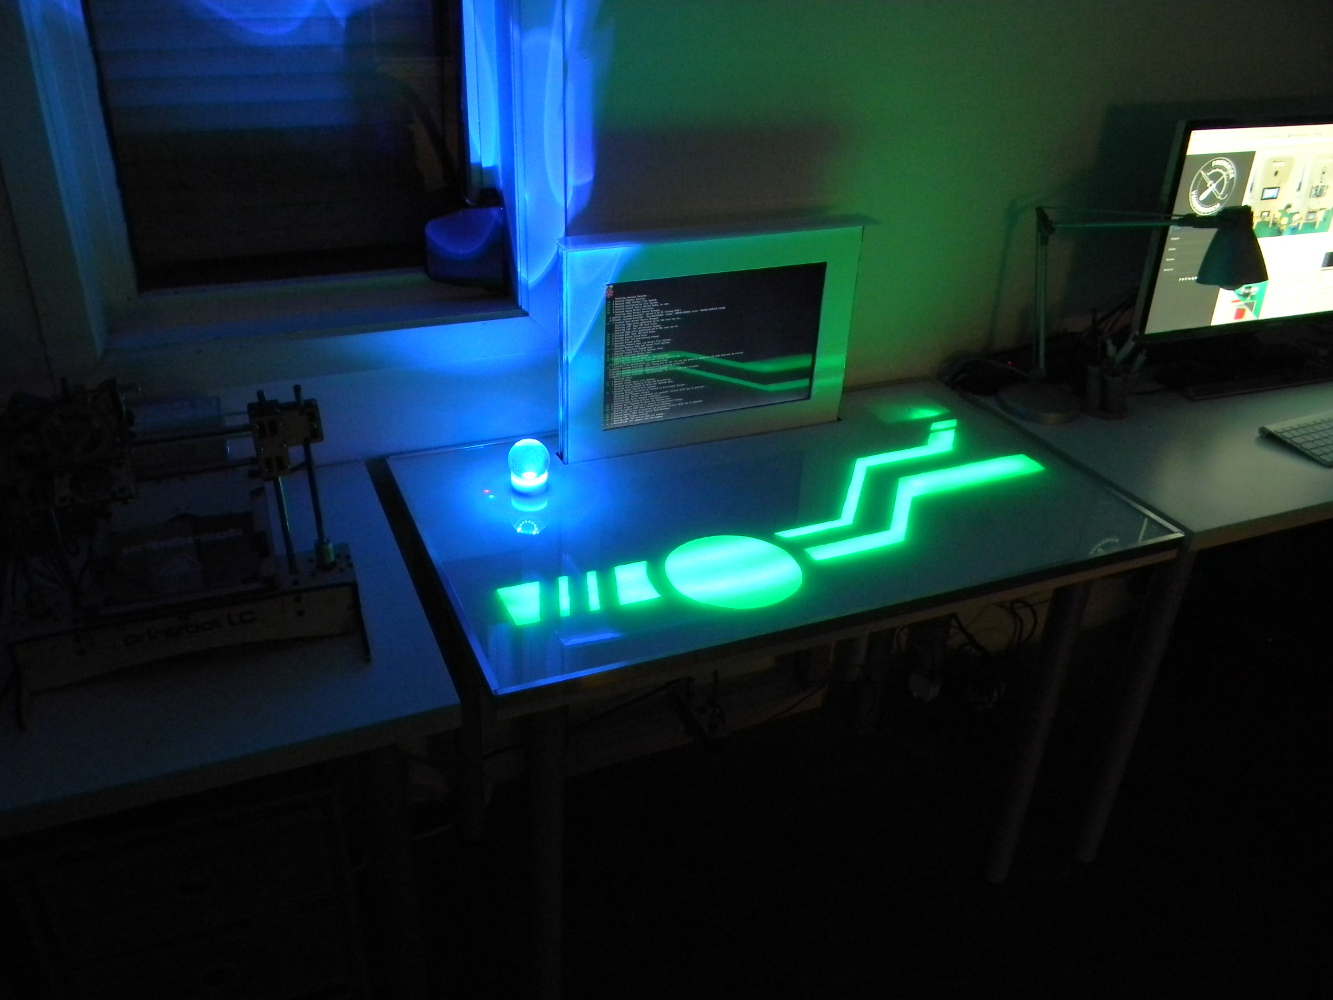 The light patterns are inspired by Tron